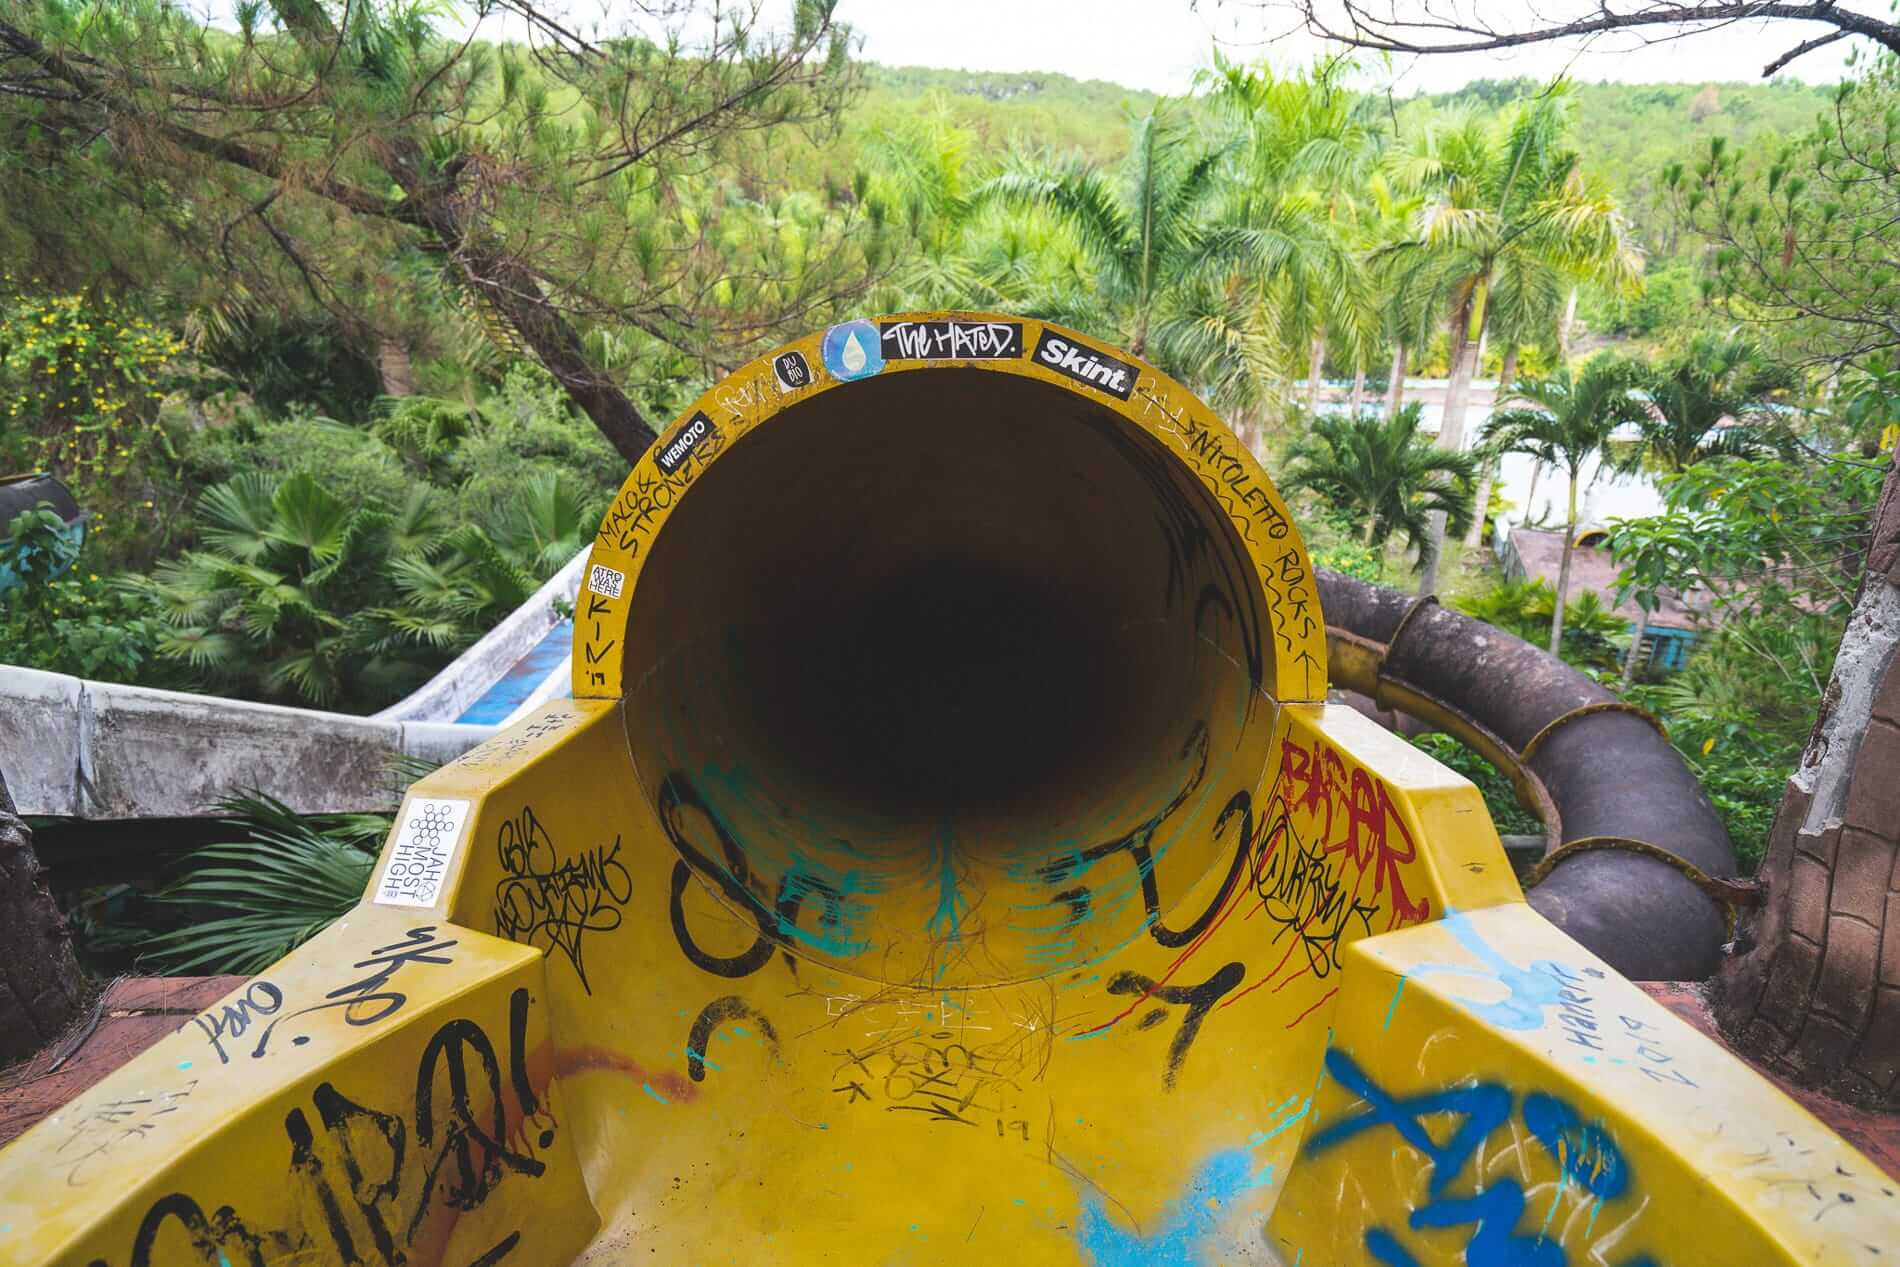 Vandalized attraction - Vandalized attraction - Hue's abandoned water park